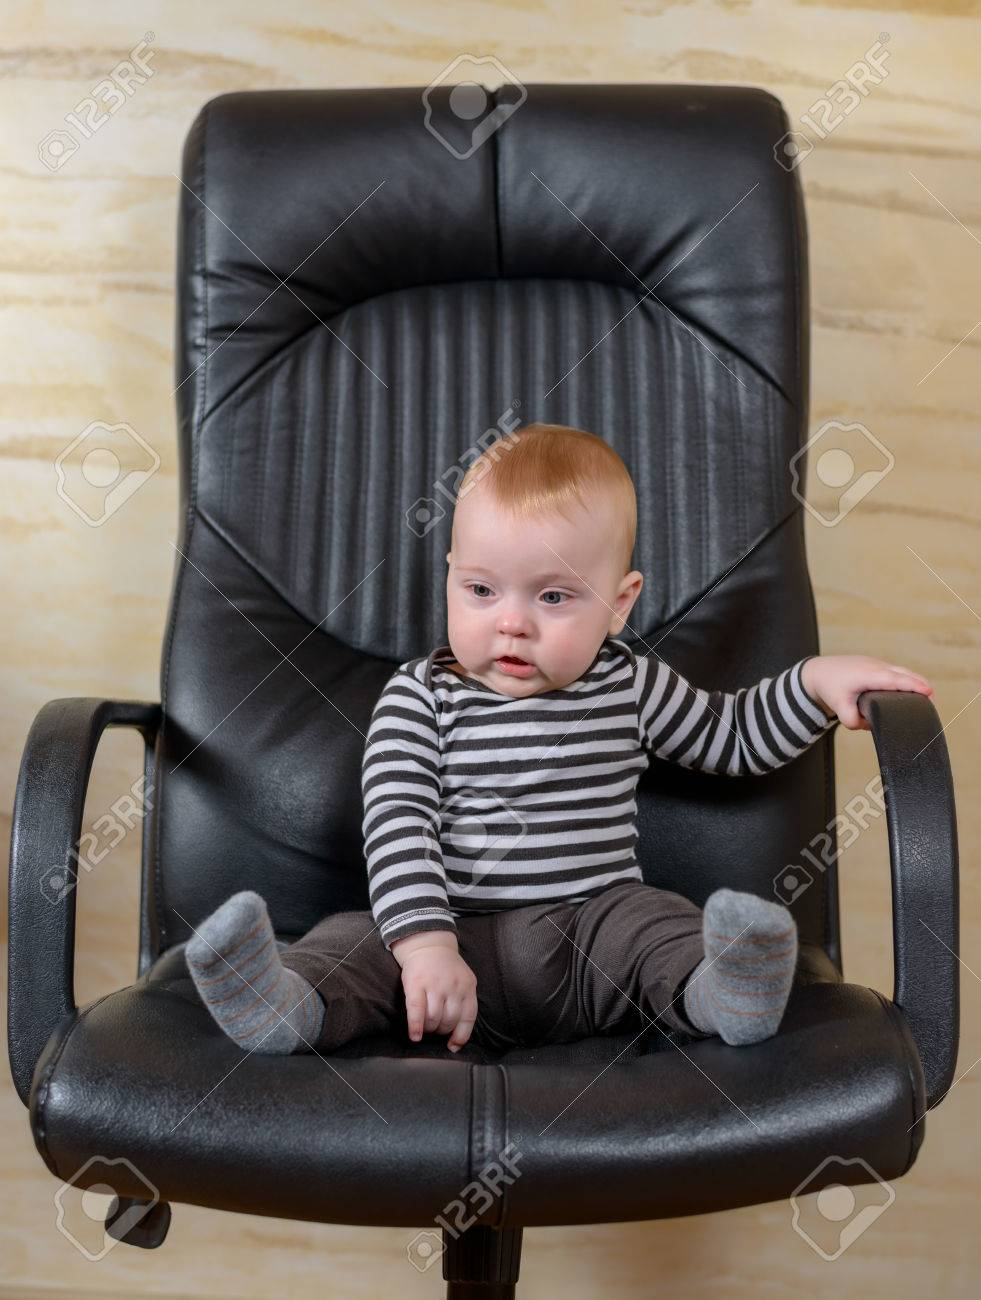 Black child sitting in chair - Fun Portrait Of A Cute Chubby Little Baby Boy Sitting In A Black Leather Office Chair